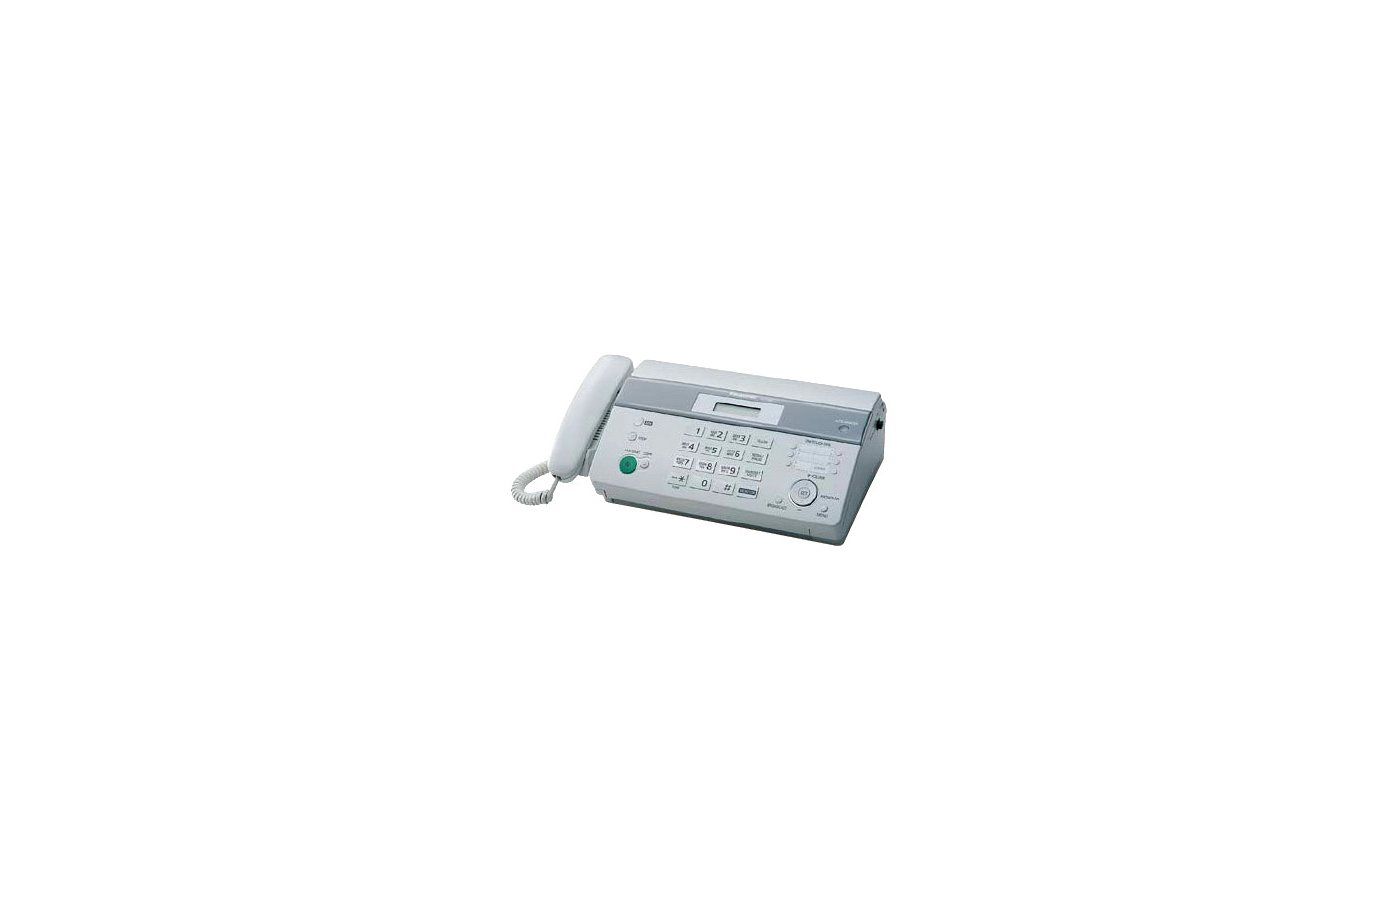 Факс PANASONIC KX-FT 982 RUW факс